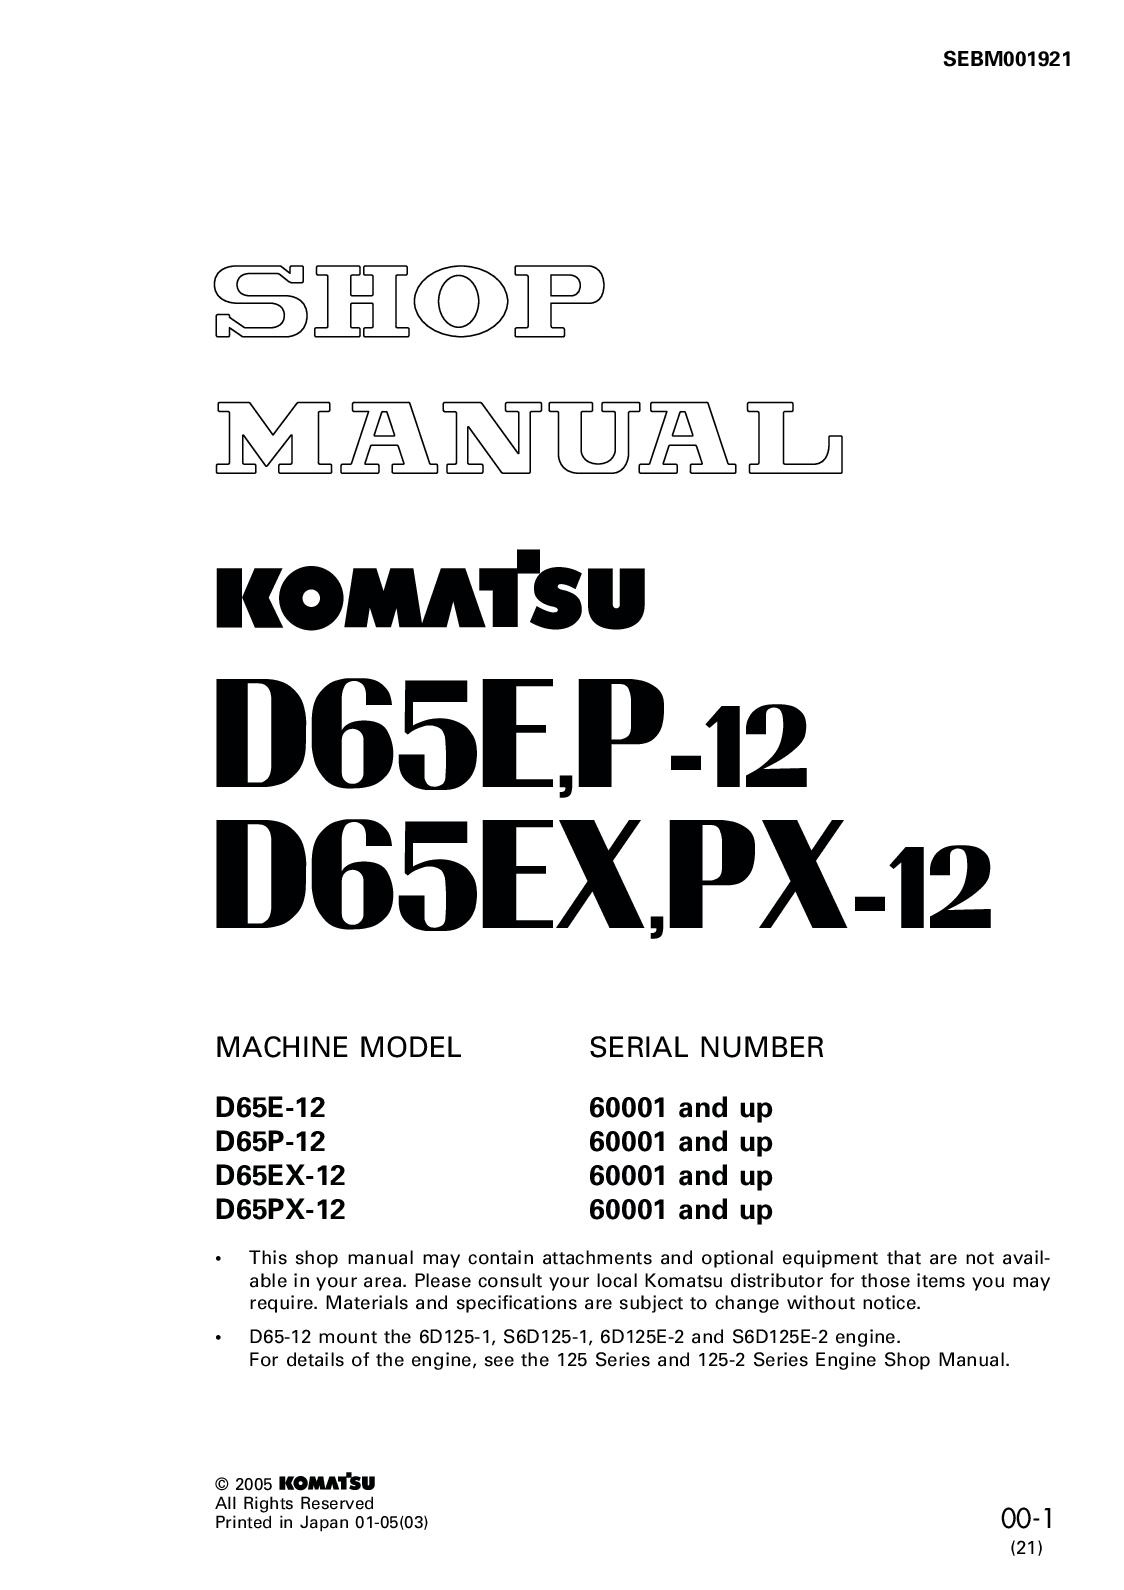 D65 Komatsu Wiring Diagram For Professional Caterpillar Diagrams Spare Part Library Rh 62 Budoshop4you De Pc300